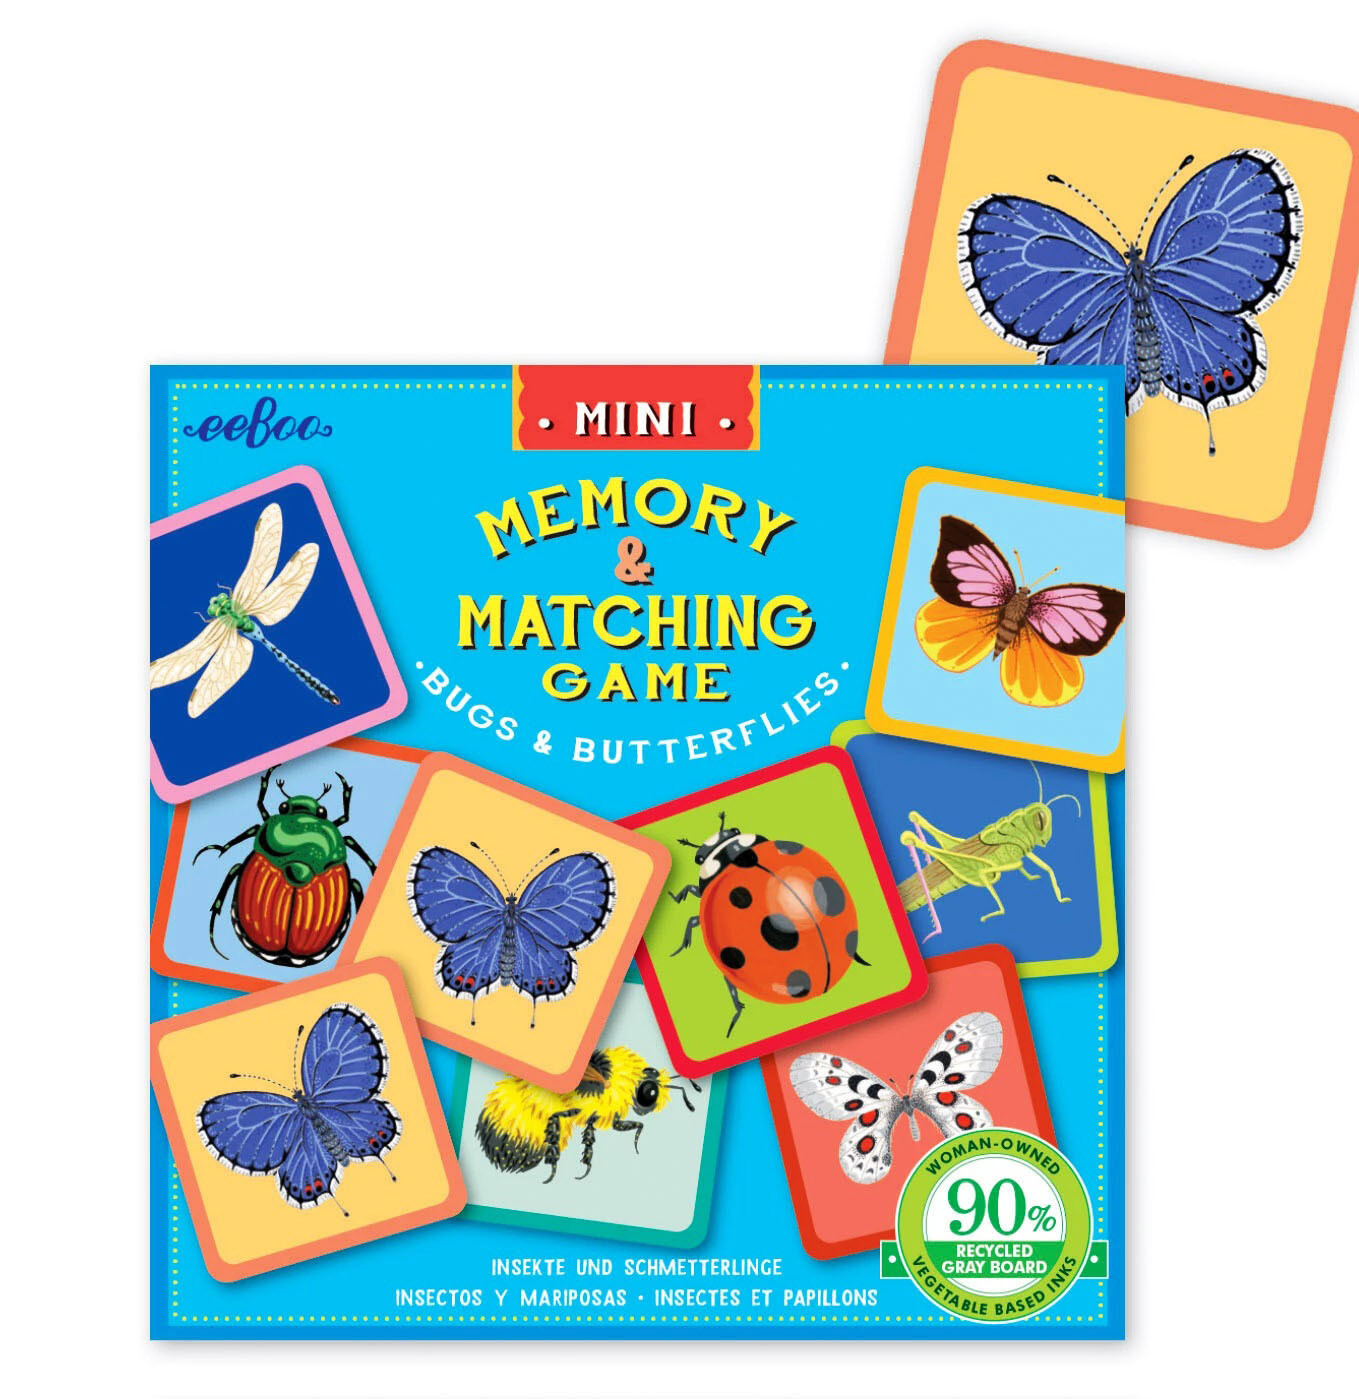 eeBoo Mini Memory & Matching Game Bugs & Butterflies